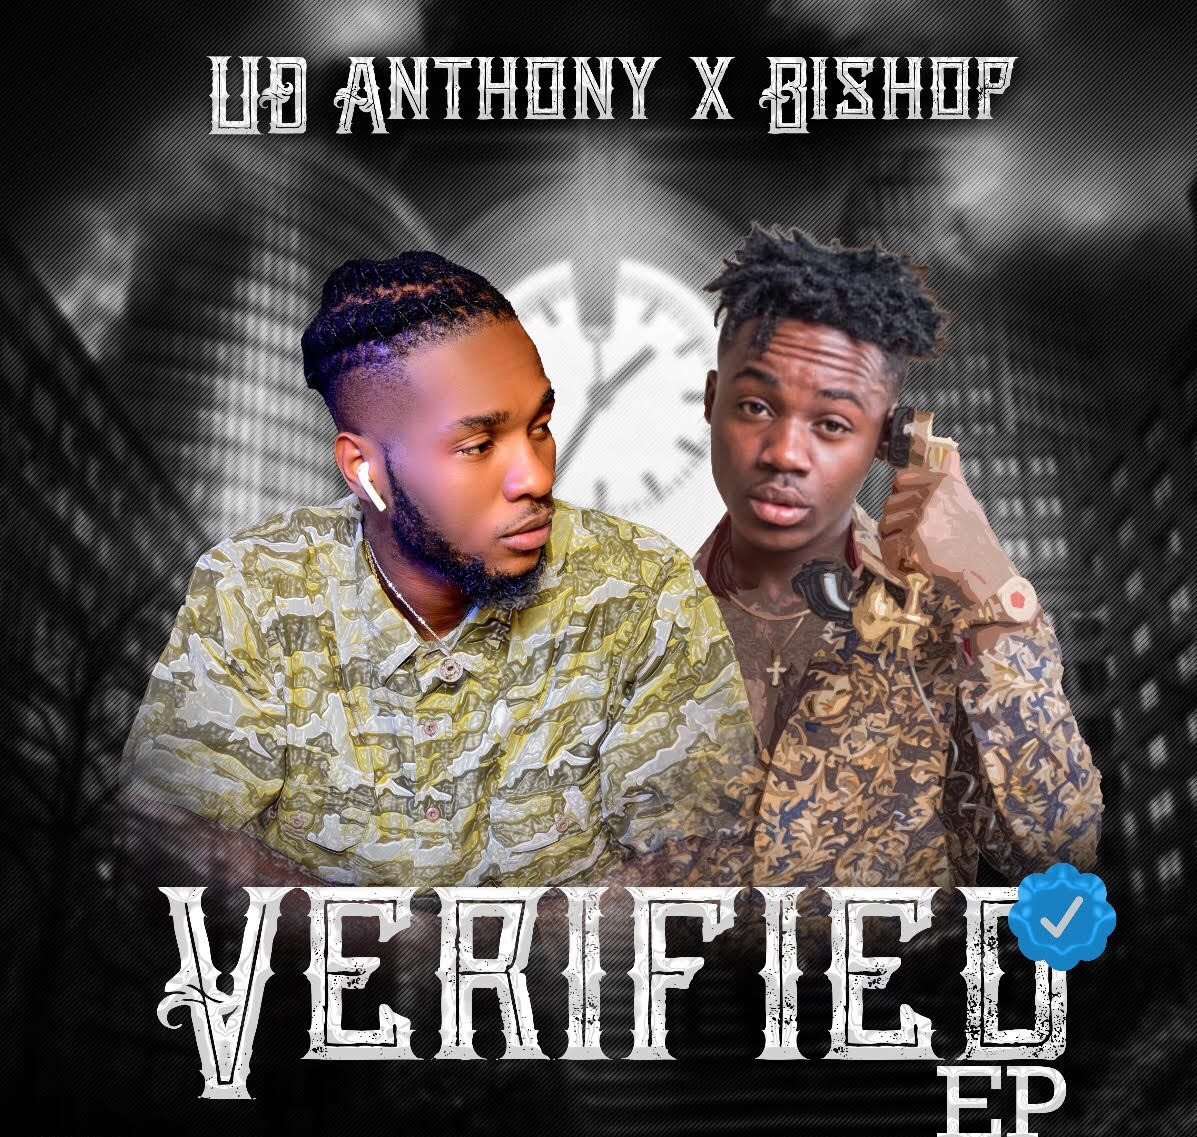 UD ANTHONY & BISHOP COLLABORATES ON VERIFIED EP